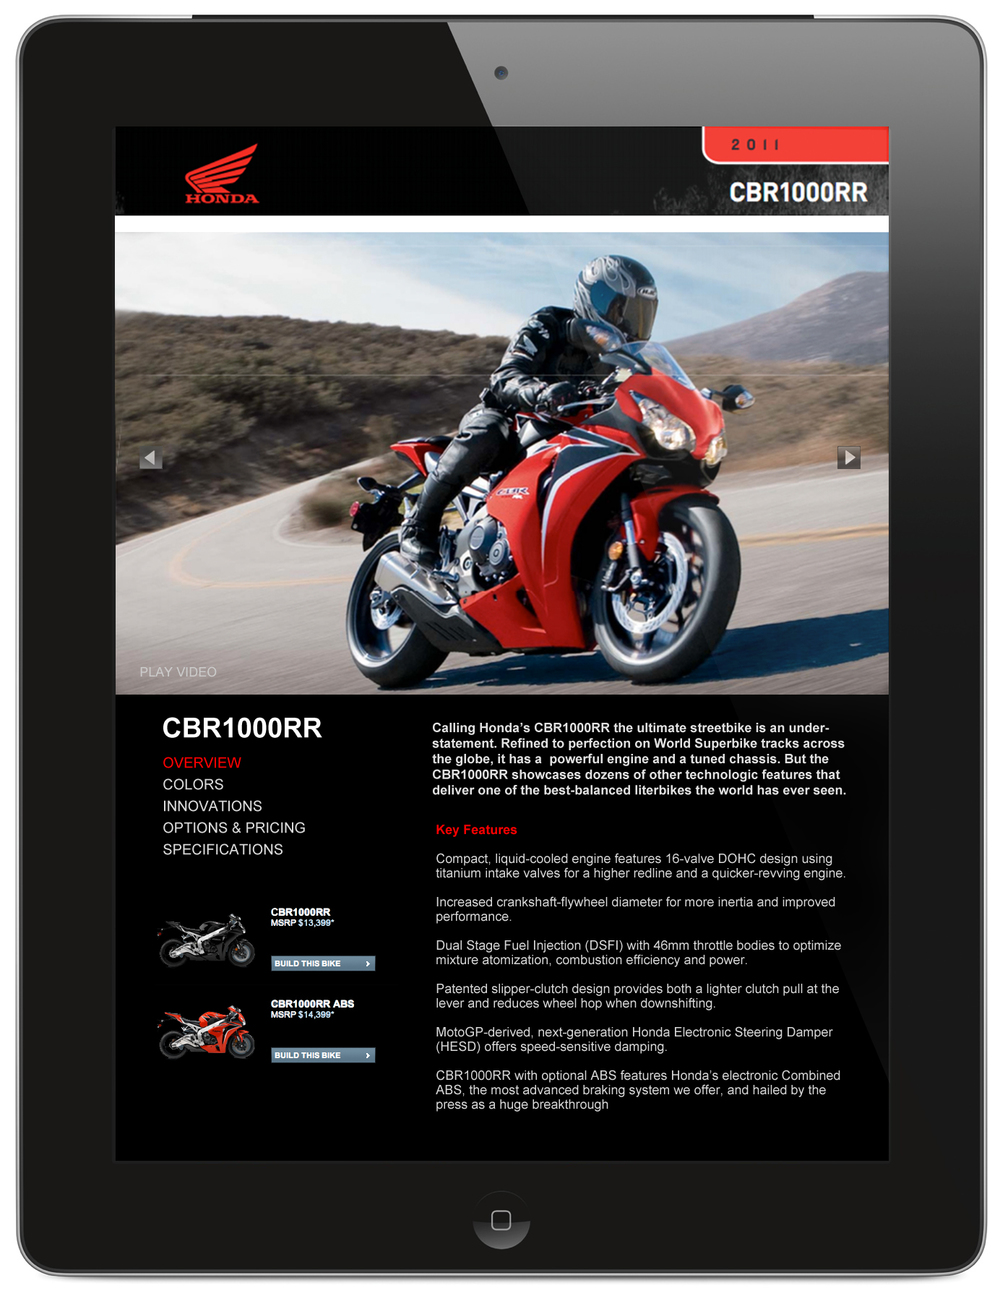 Honda_iPad_App_Overview.jpg